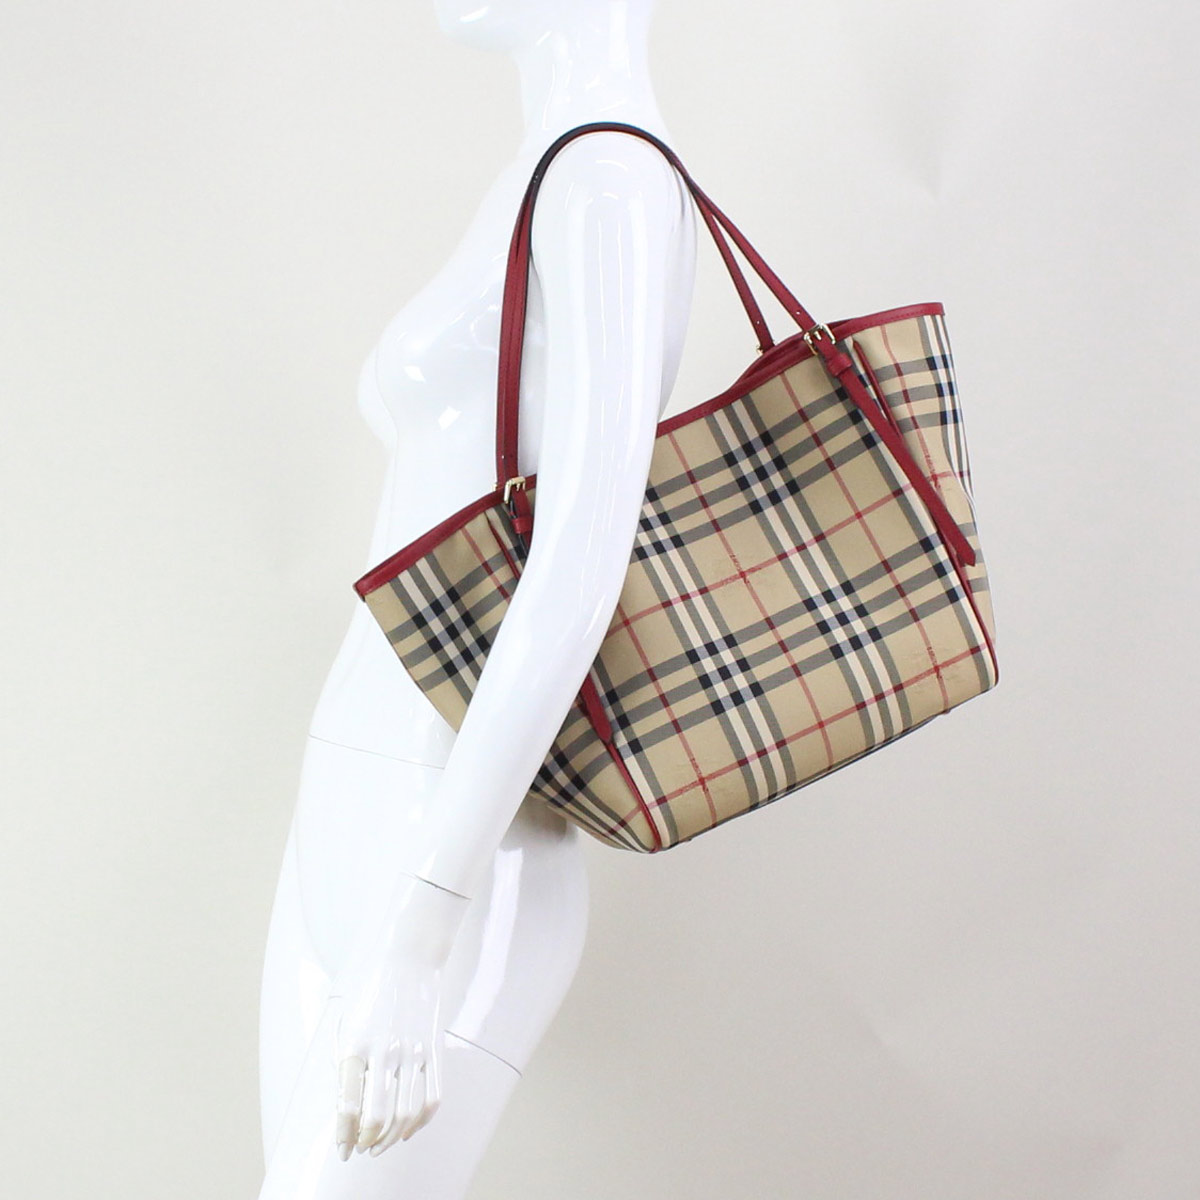 2ff7f46472a2 Bighit The total brand wholesale  Burberry (BURBERRY) SM CANTER ...